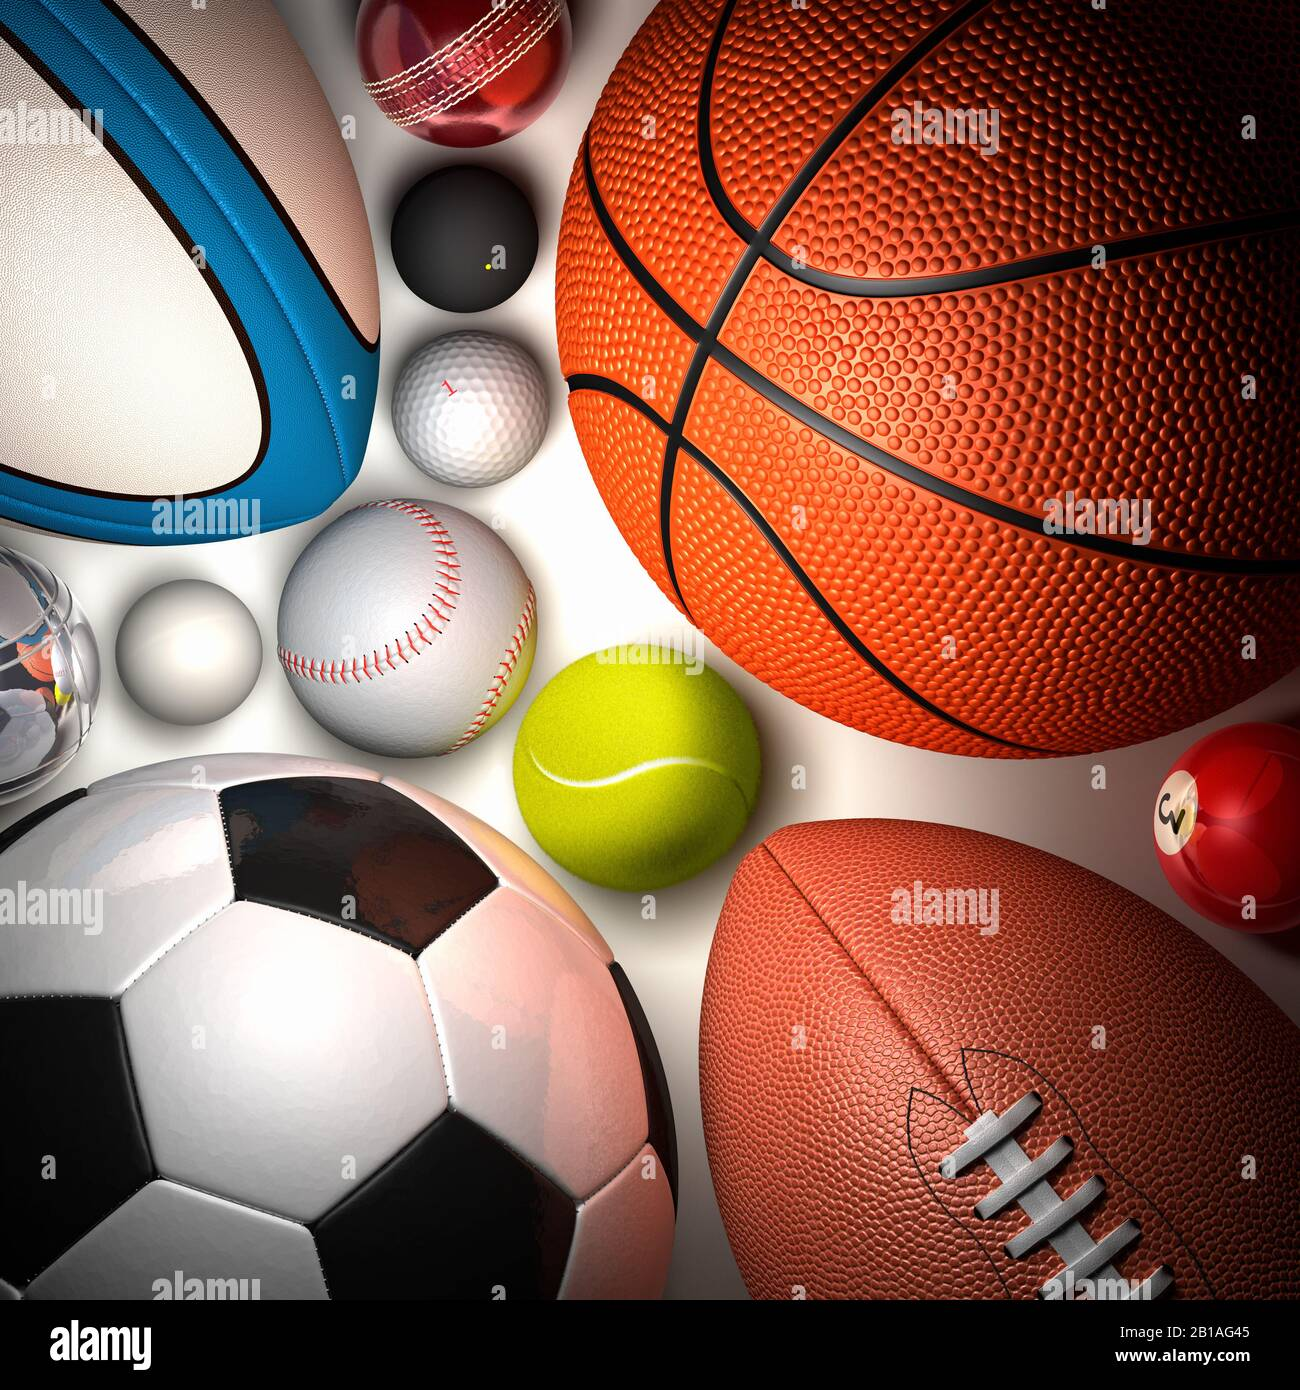 Balls of various sports shot from above. Ball family. Football, basketball, tennis, rugby, baseball, cricket, golf, squash, boules, pool, table tennis Stock Photo